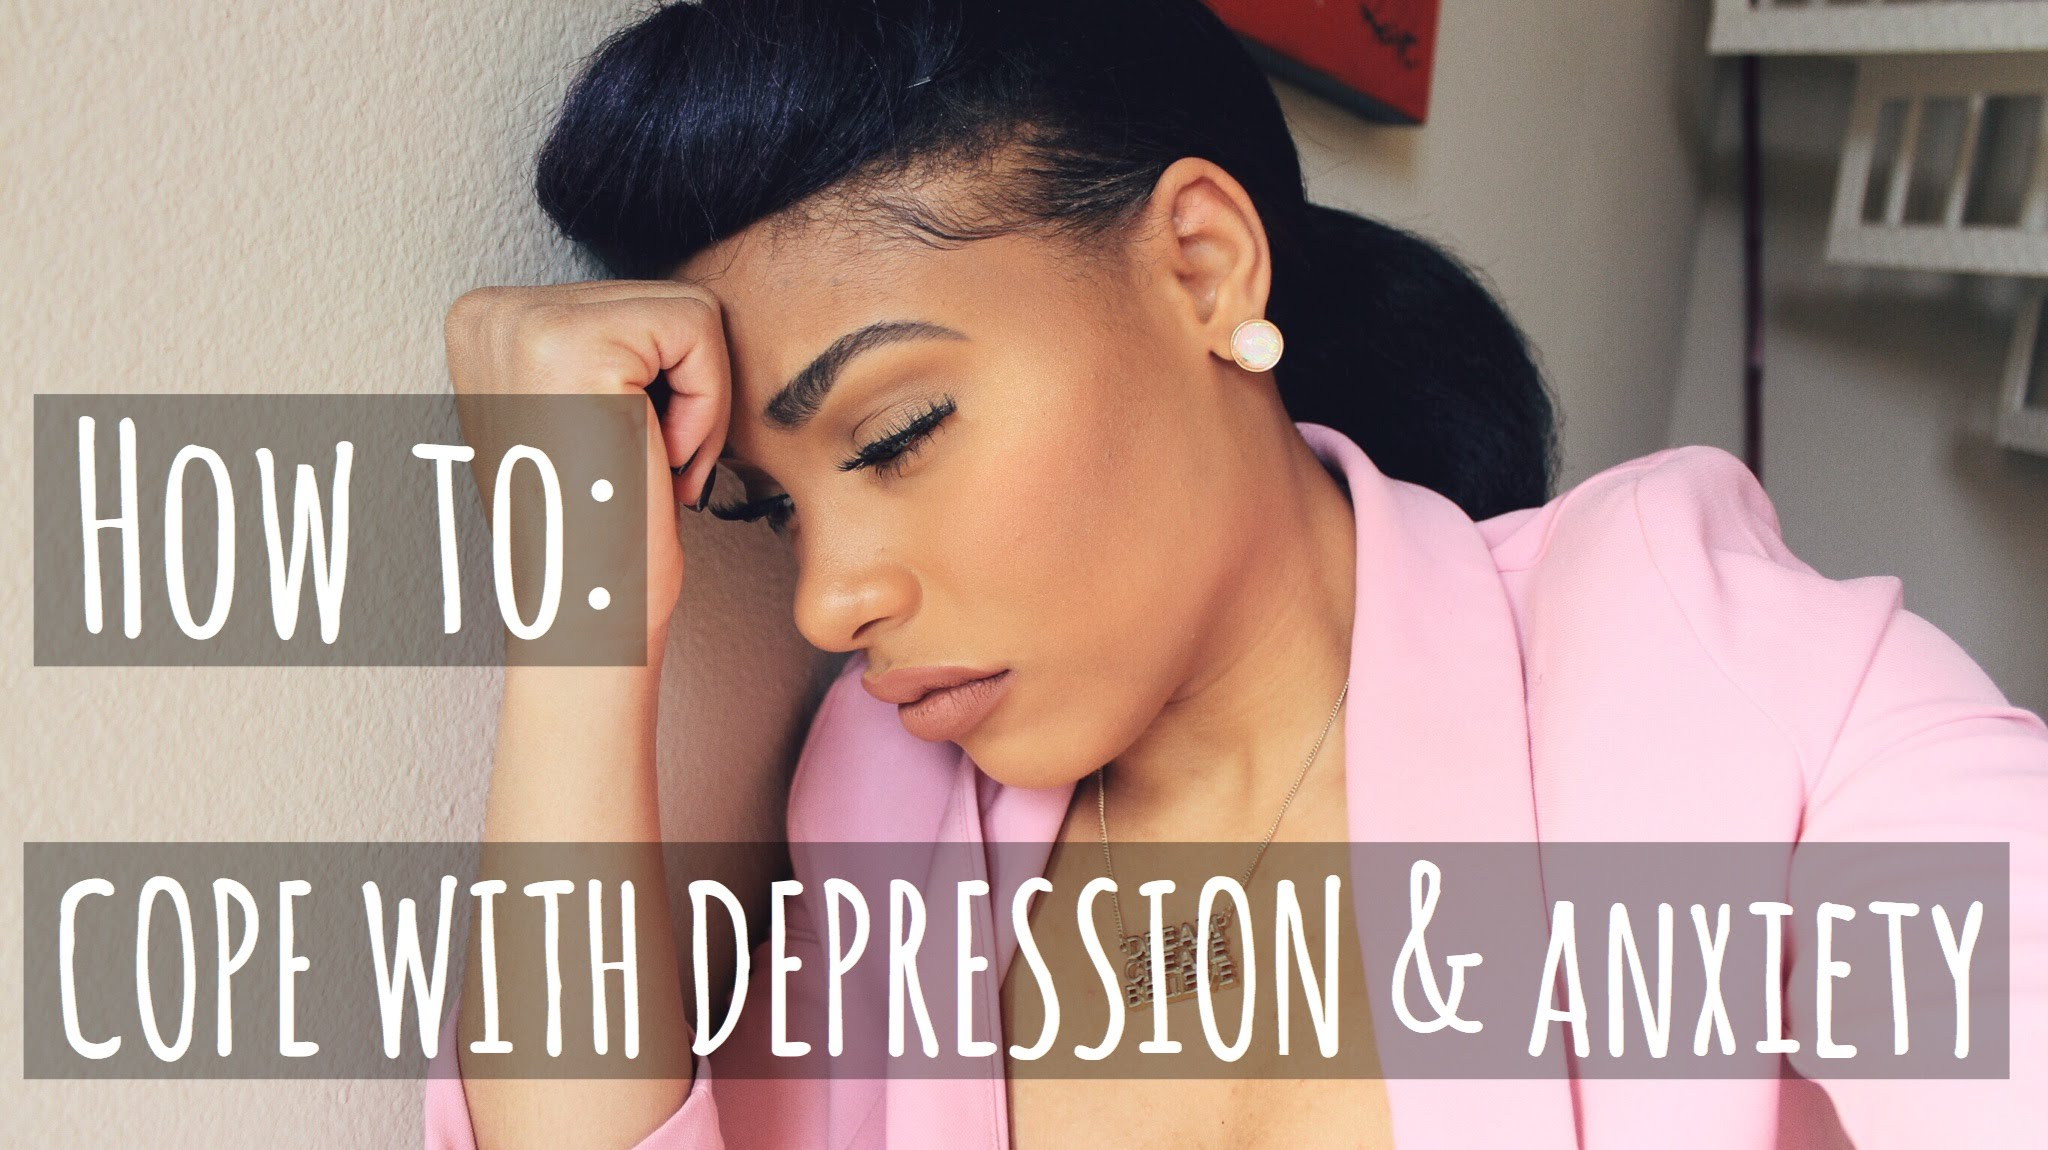 HOW TO : COPE WITH DEPRESSION & ANXIETY